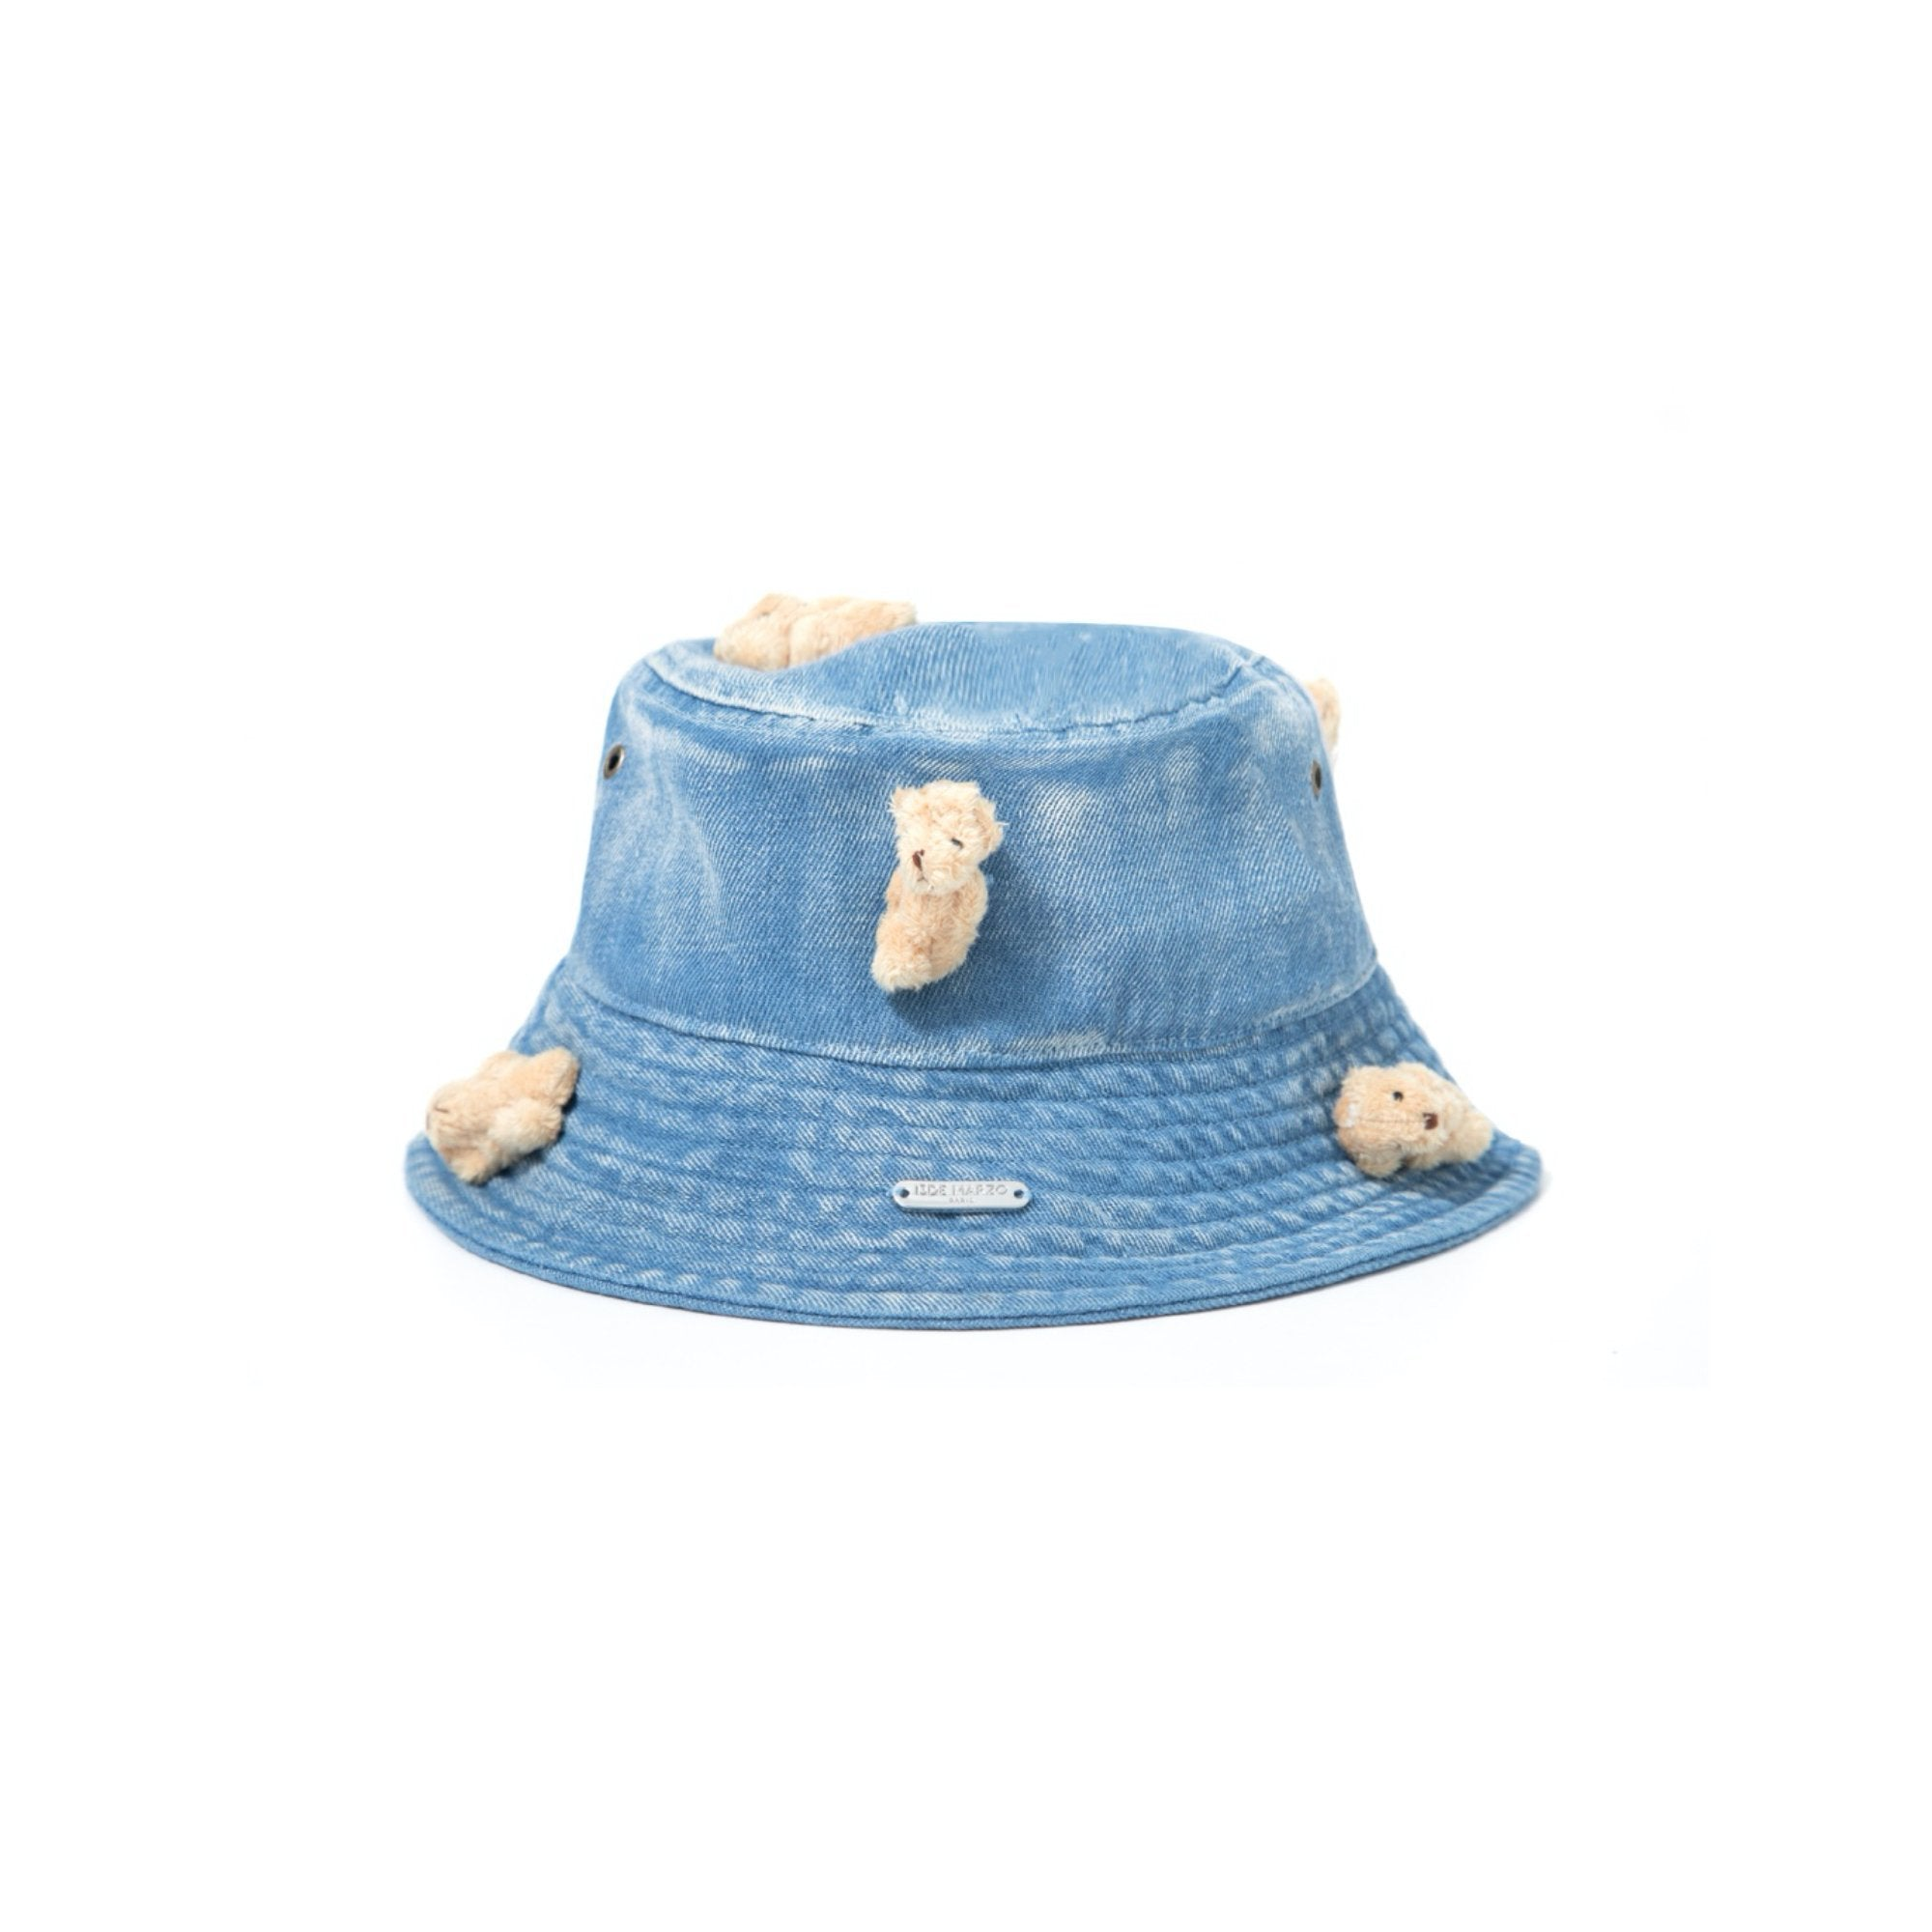 13 DE MARZO Mini Teddy Bear Denim Bucket Hat Washed Blue | MADA IN CHINA